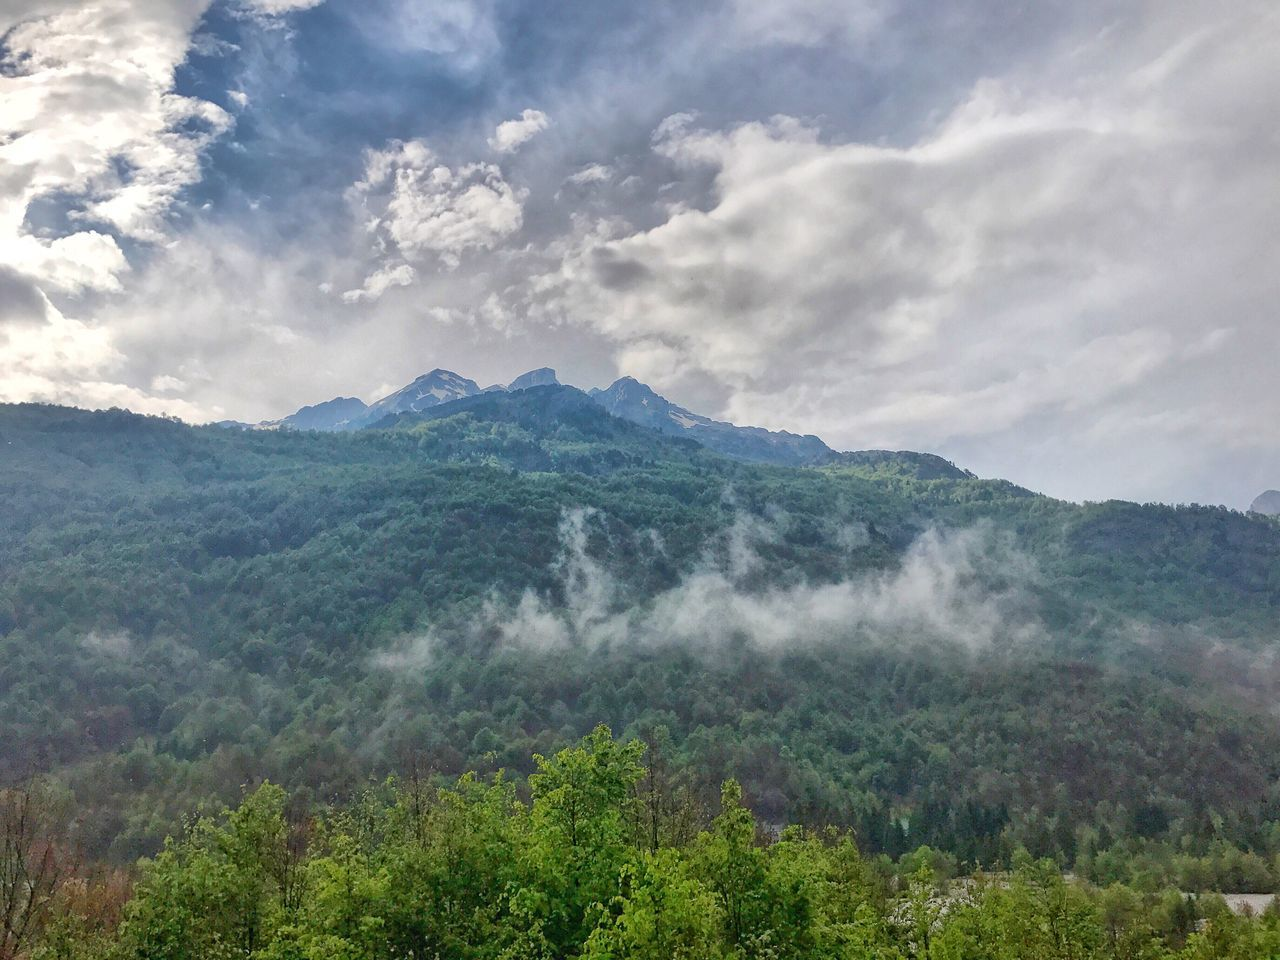 Mountain Foggy Morning Mountainview Albania Nature Beauty In Nature Sky No People Scenics Mountain Range Landscape Tranquility Day Outdoors Tree